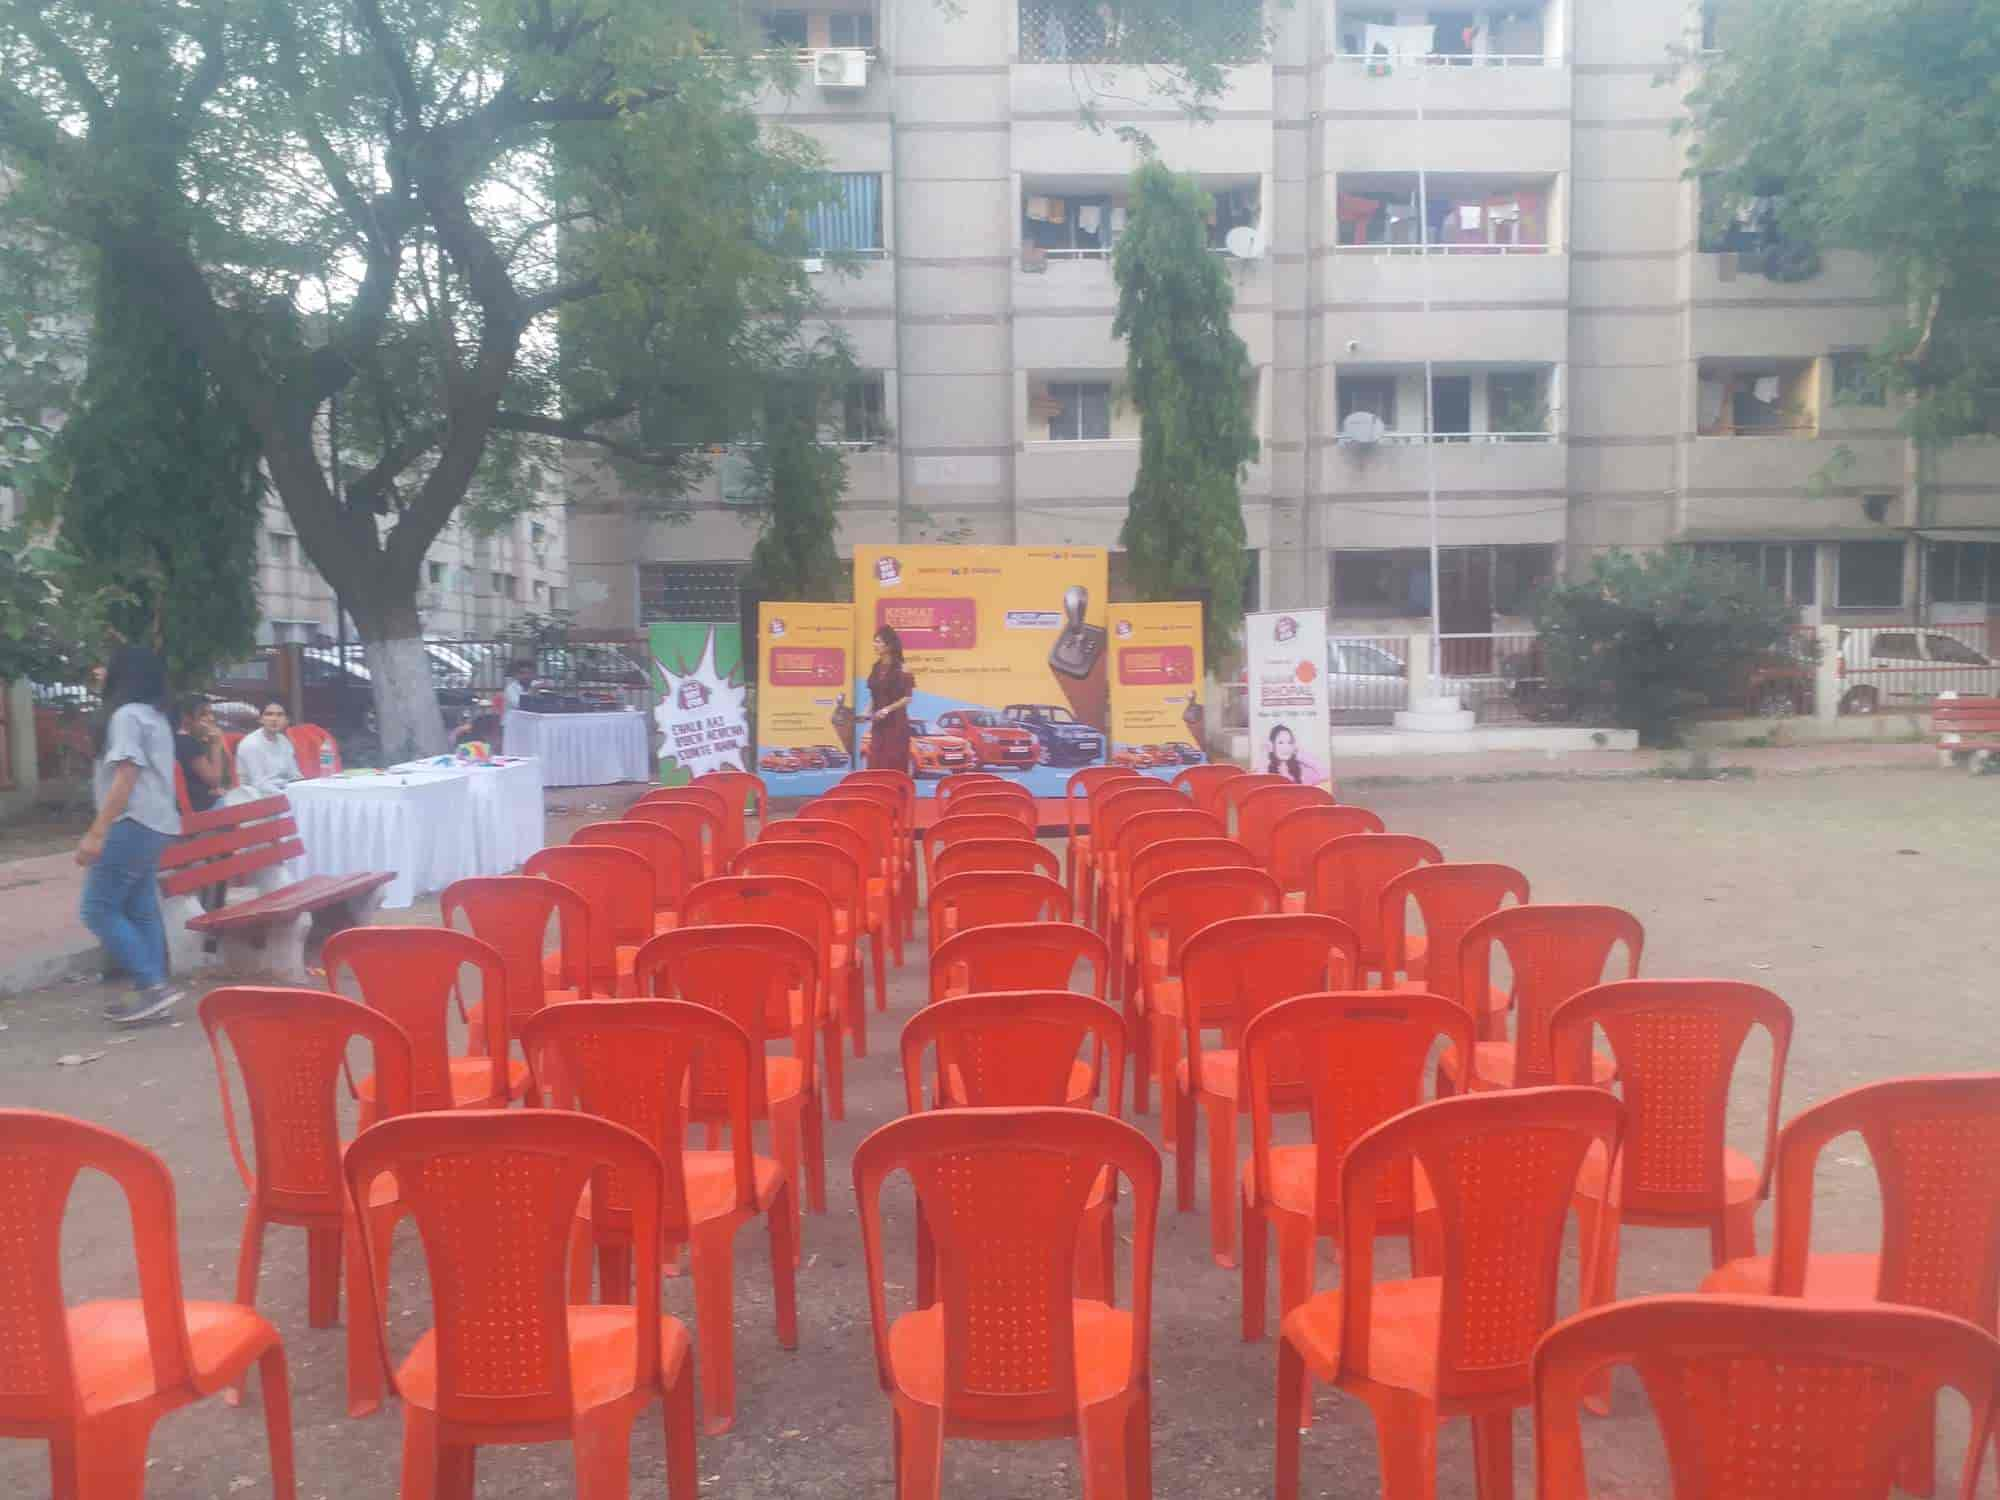 R S Event And Promotion, Ashoka Garden - Event Organisers in